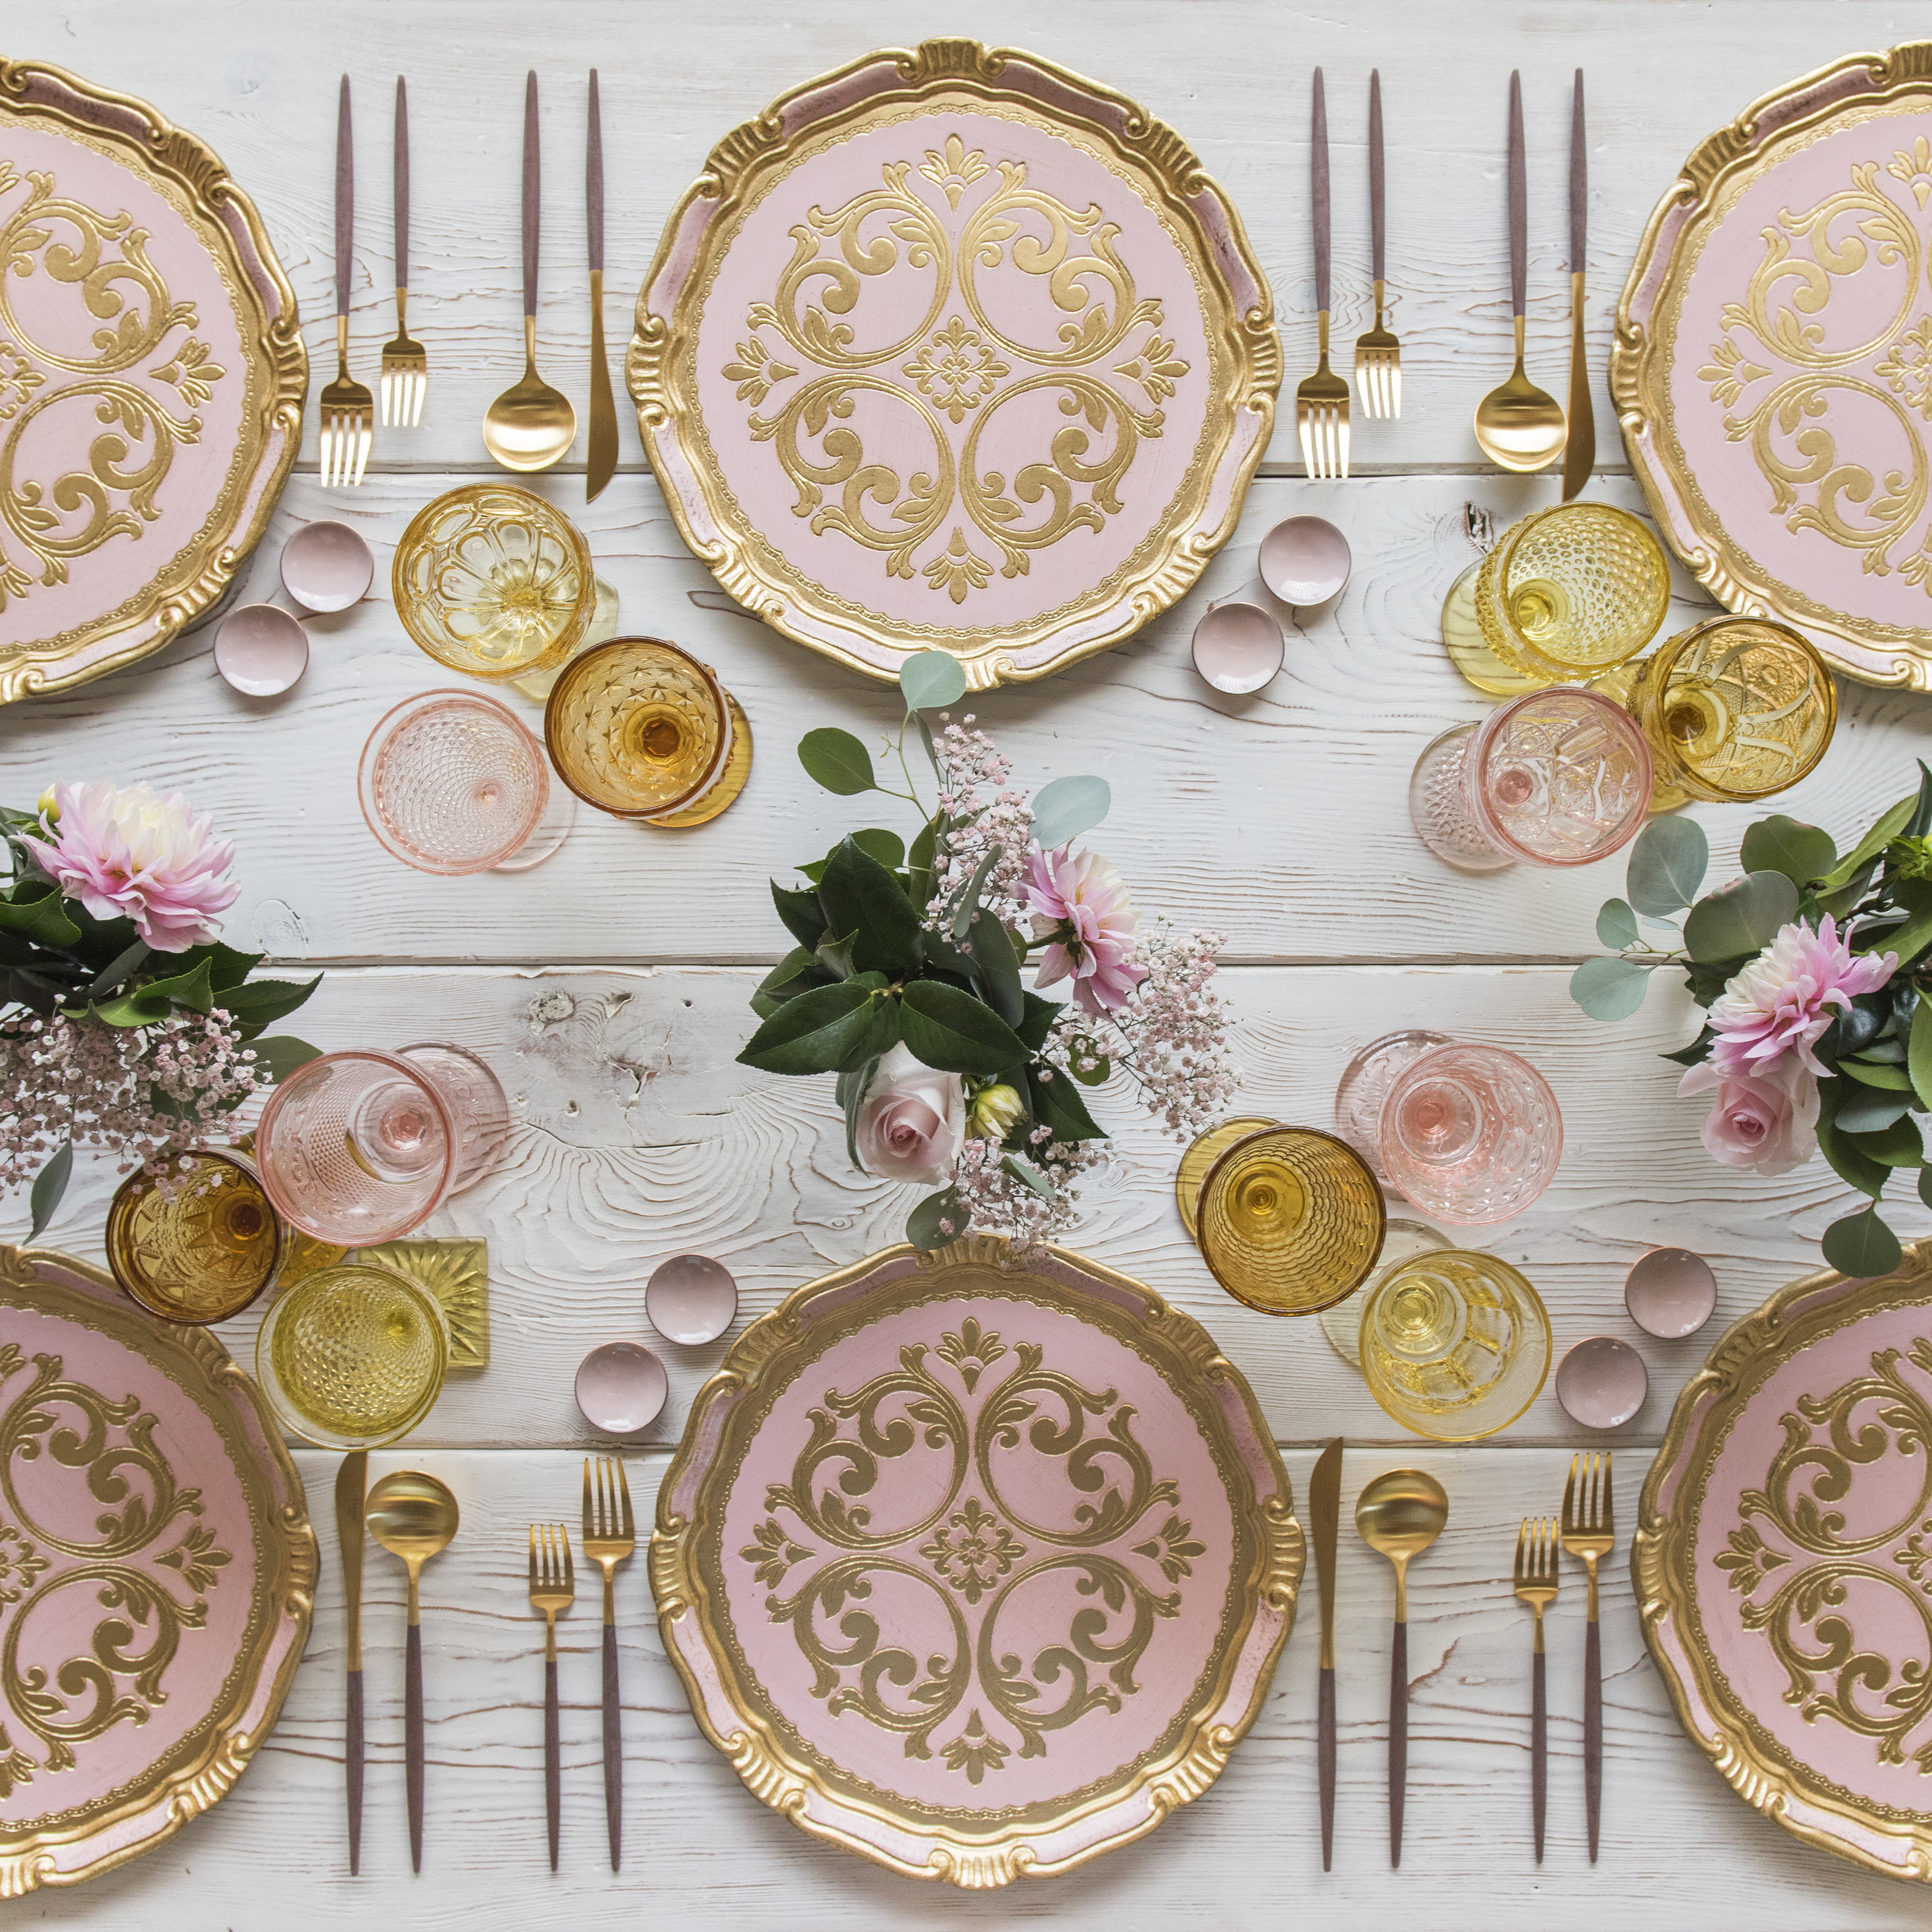 RENT: Florentine Chargers in Light Pink/Gold + Goa Flatware in Brushed 24k Gold/Wood + Pink/Amber/Yellow Vintage Goblets + Pink Enamel Salt Cellars  SHOP: Florentine Chargers in Light Pink/Gold + Goa Flatware in 24k Gold/Wood + Pink Enamel Salt Cellars